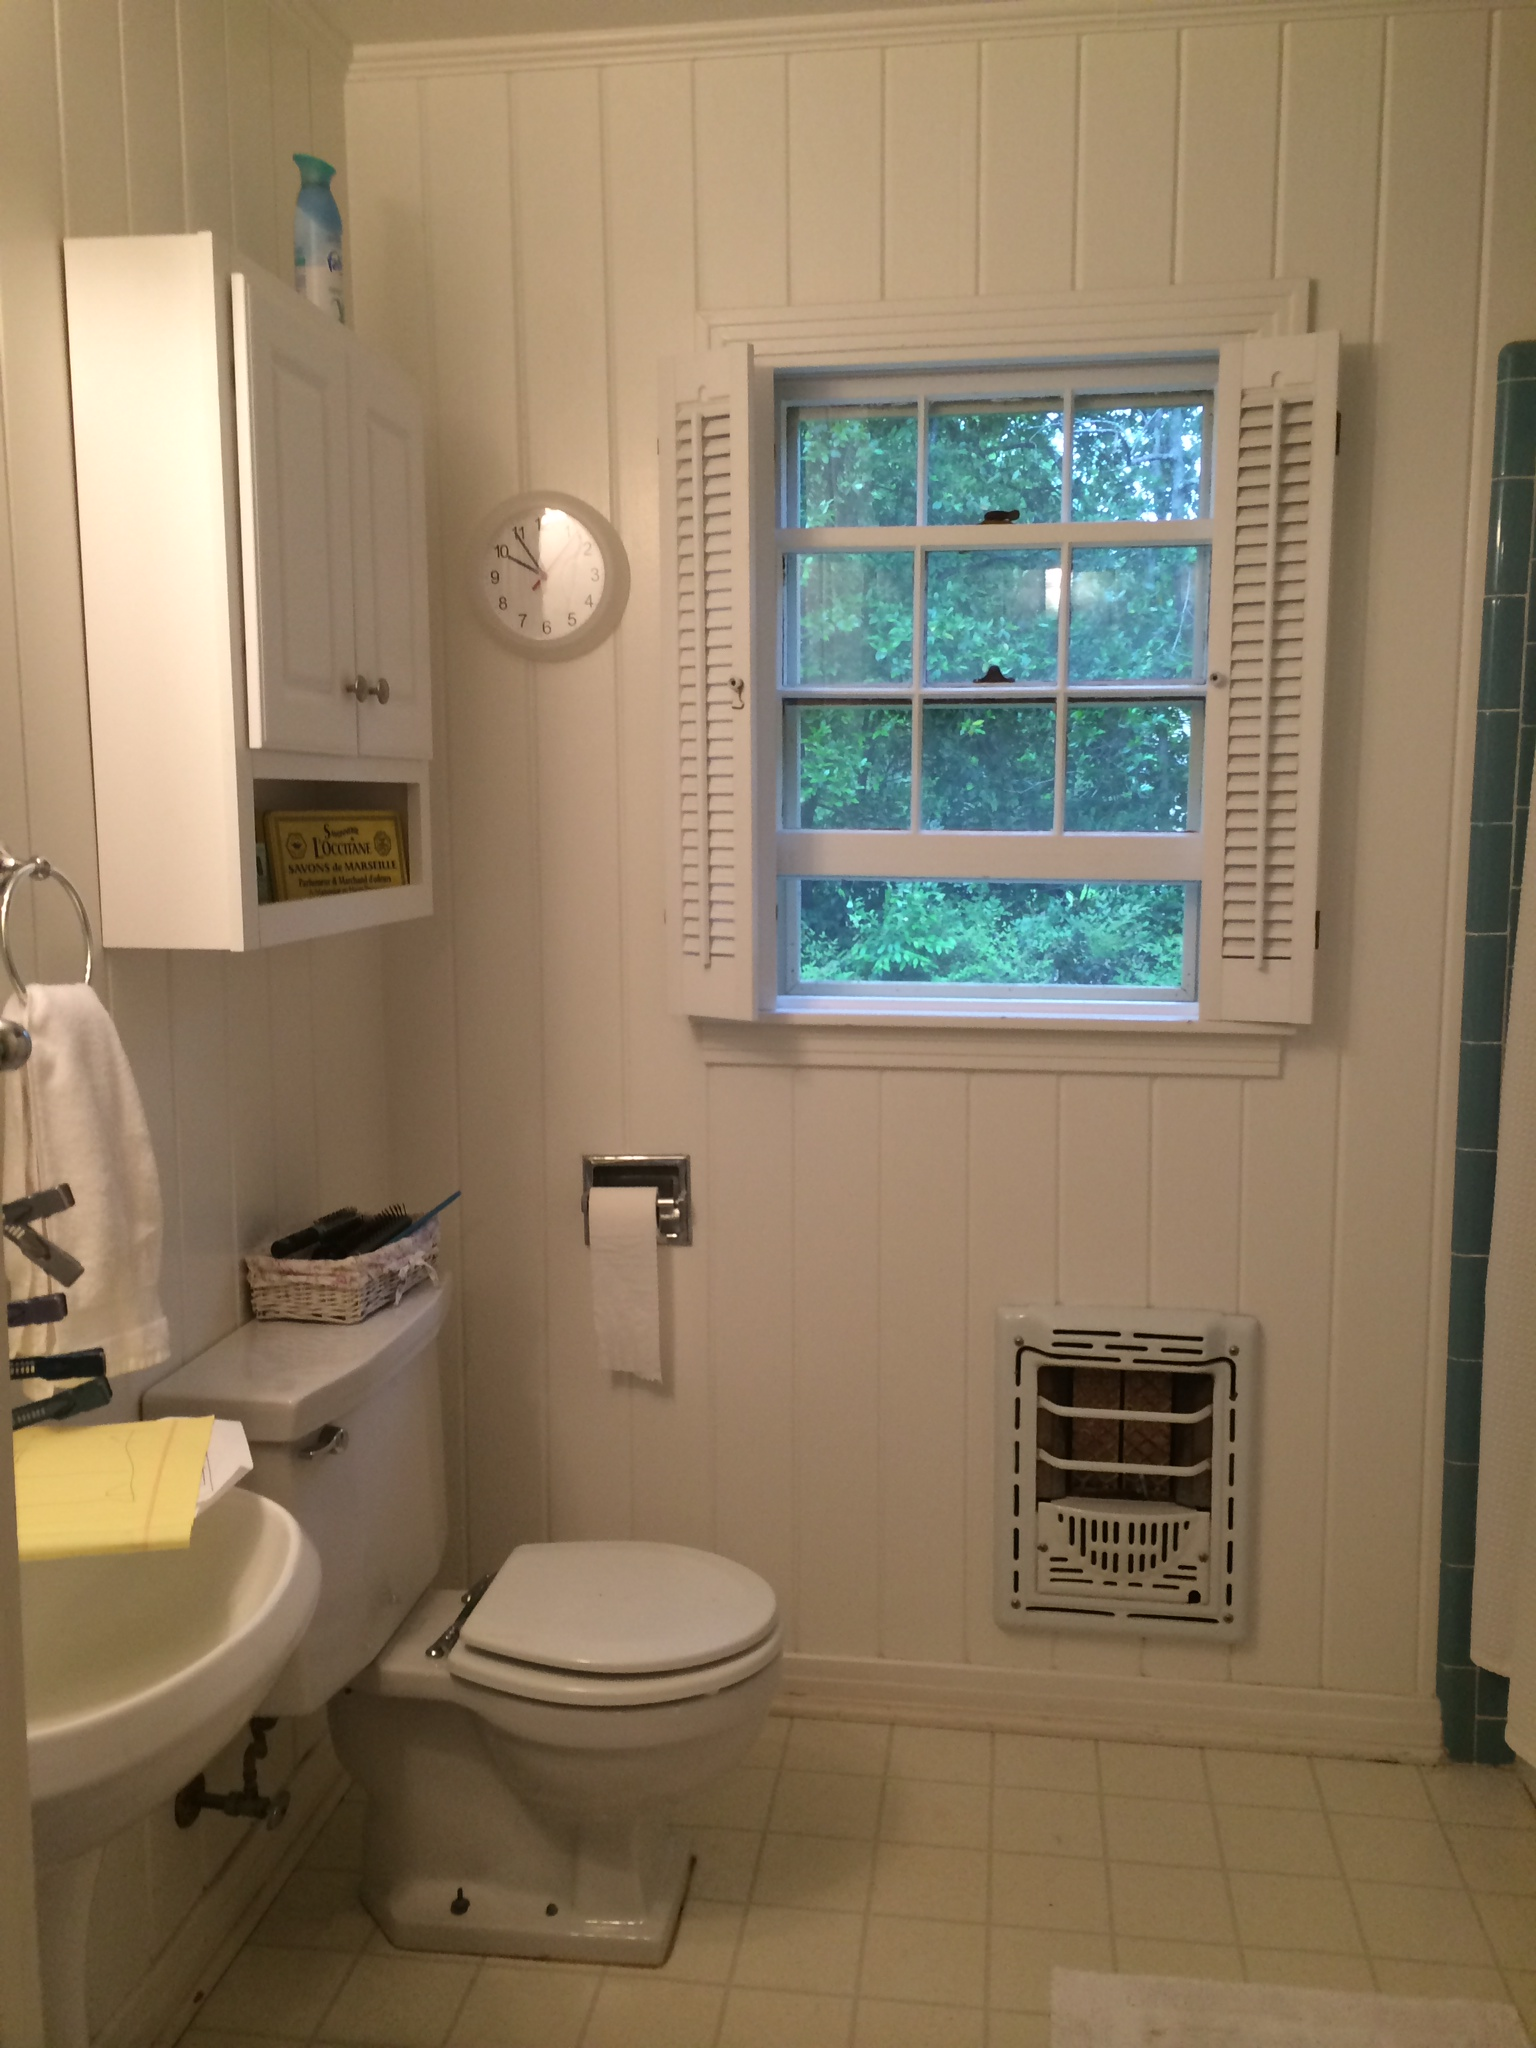 And here's the full bath. Again with no counter space.